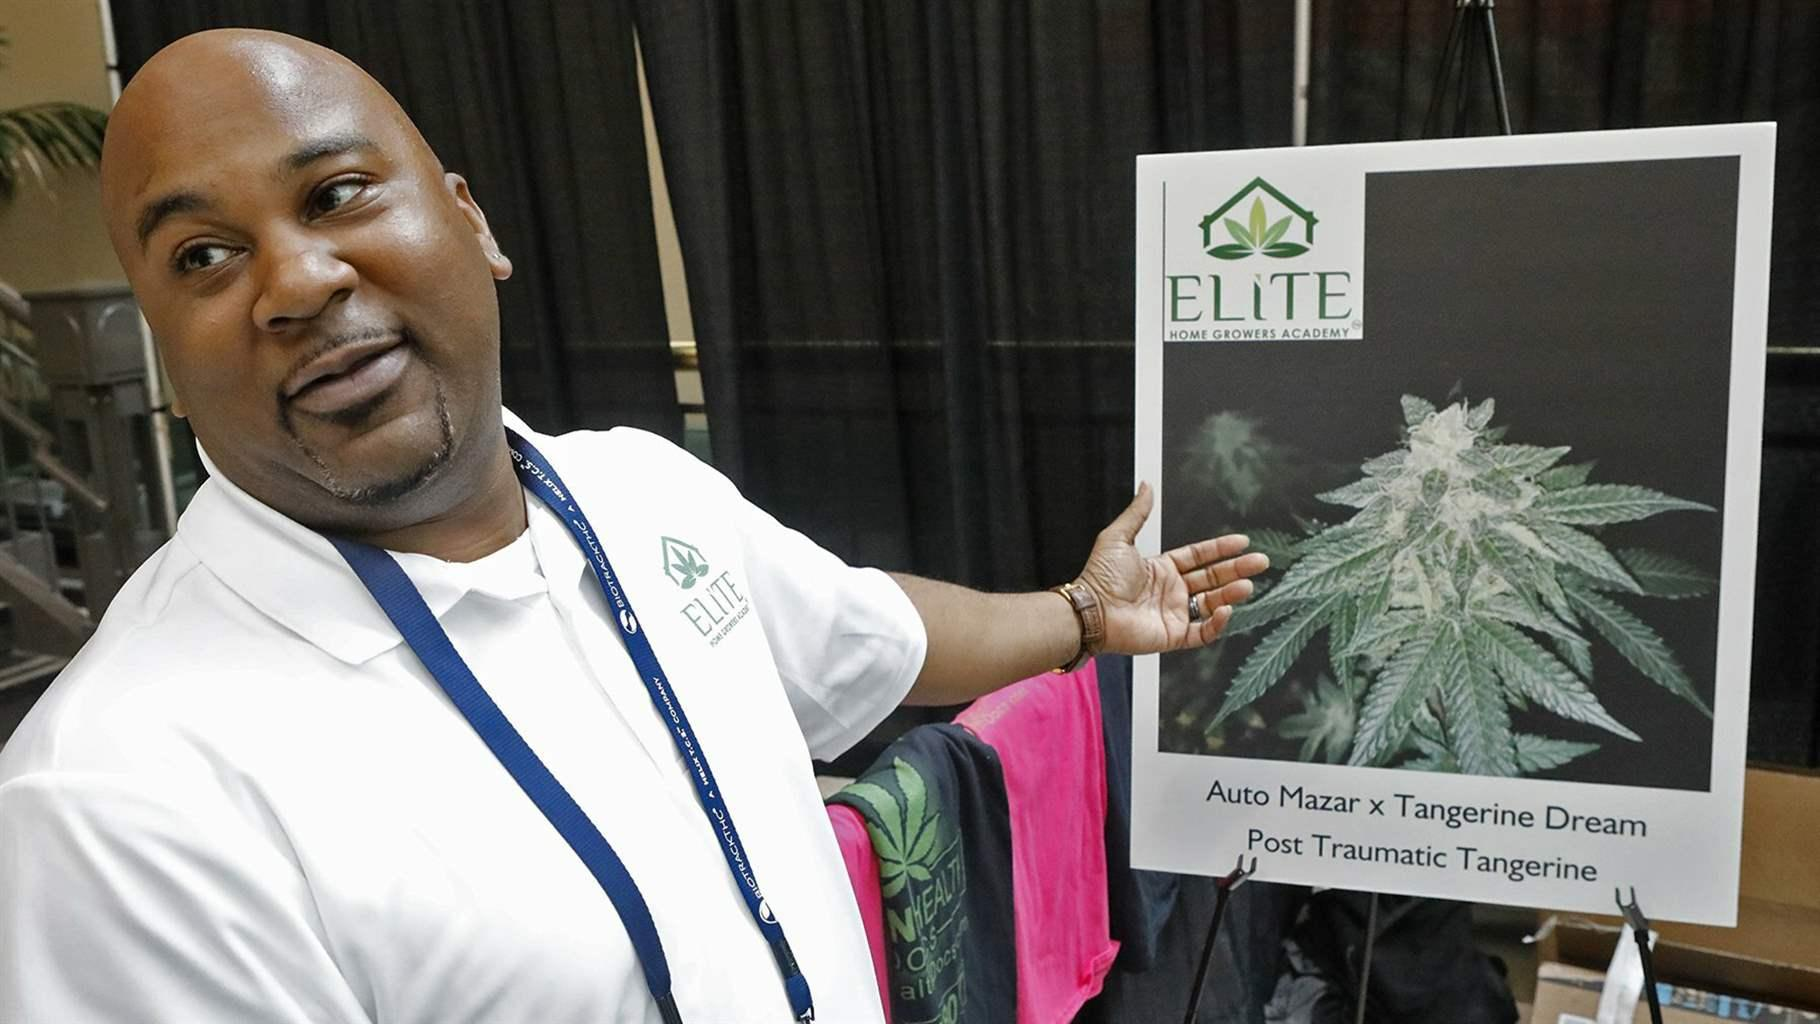 African-Americans Missing Out on Southern Push for Legal Pot | The Pew  Charitable Trusts